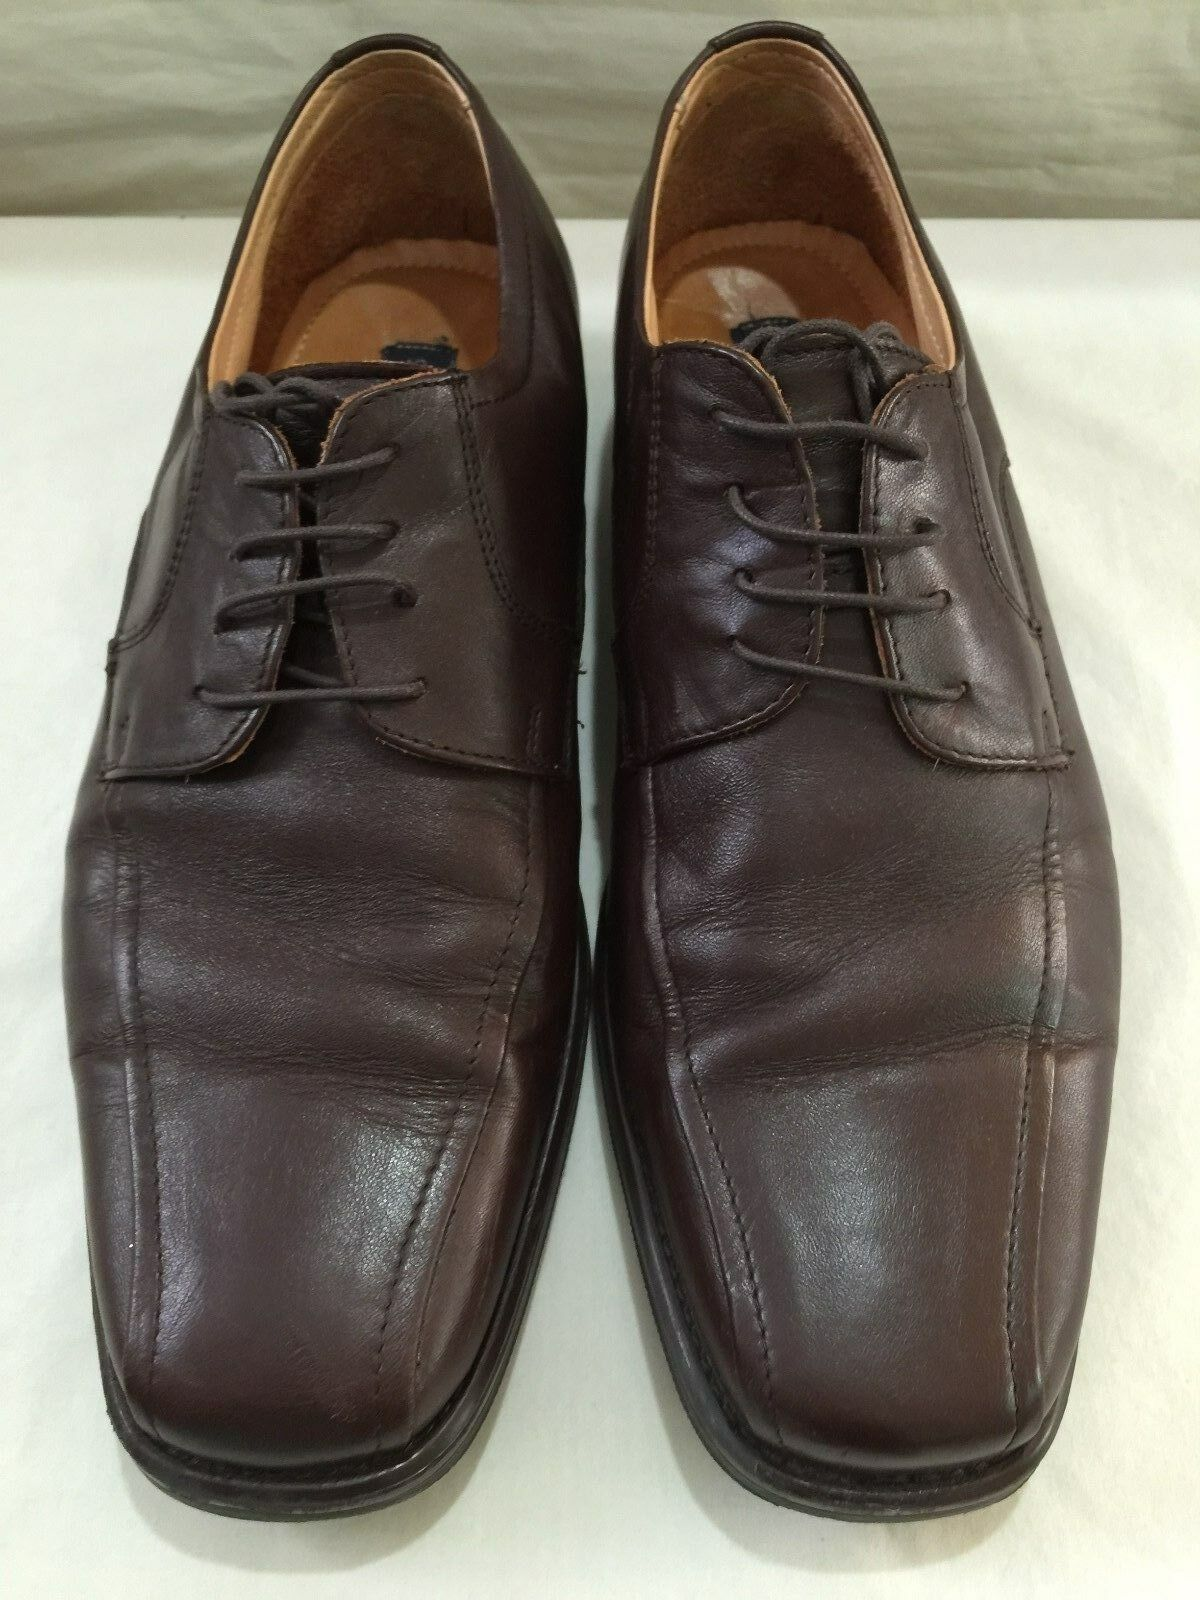 Giorgio Brutini Mens 10.5 M Brown Leather Oxford Dress shoes